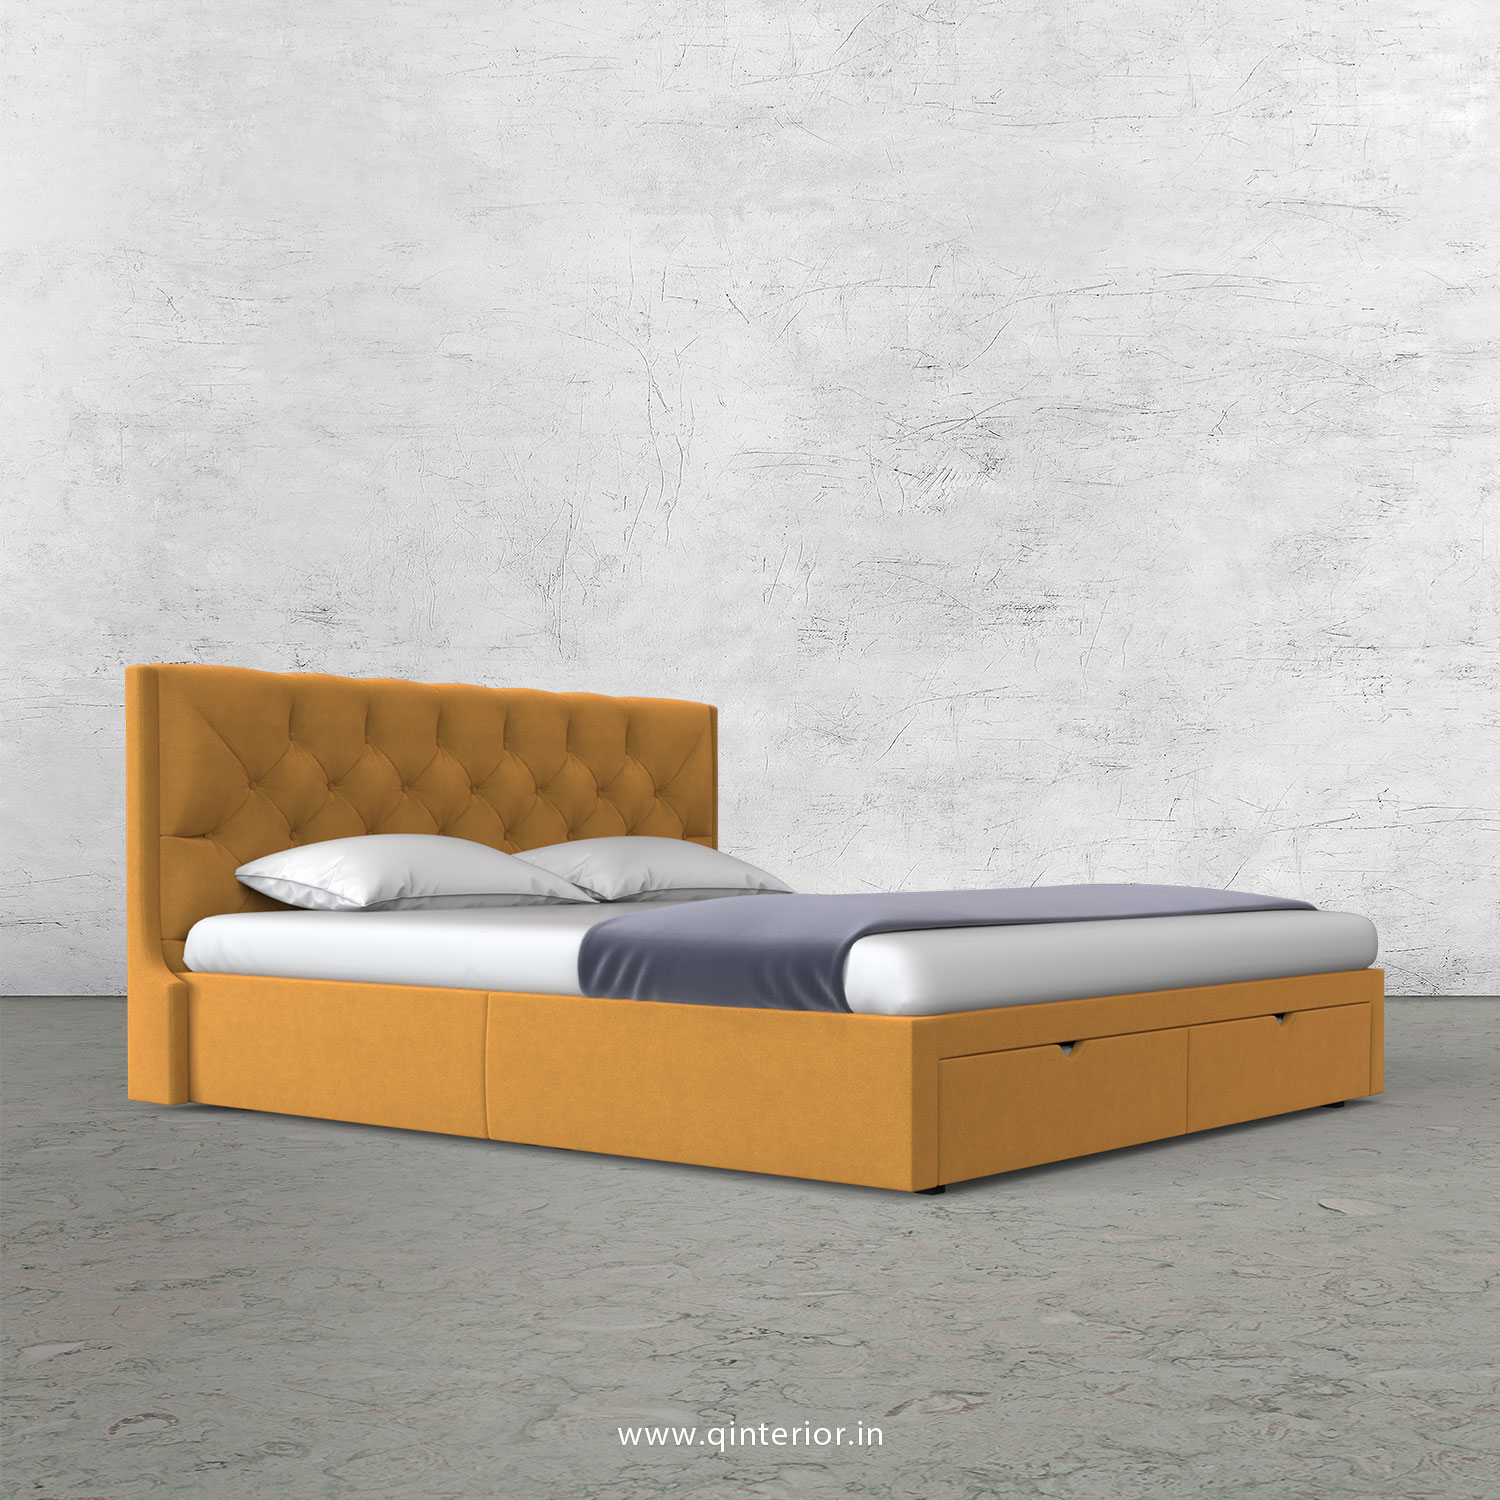 Scorpius Queen Storage Bed in Velvet Fabric - QBD001 VL18